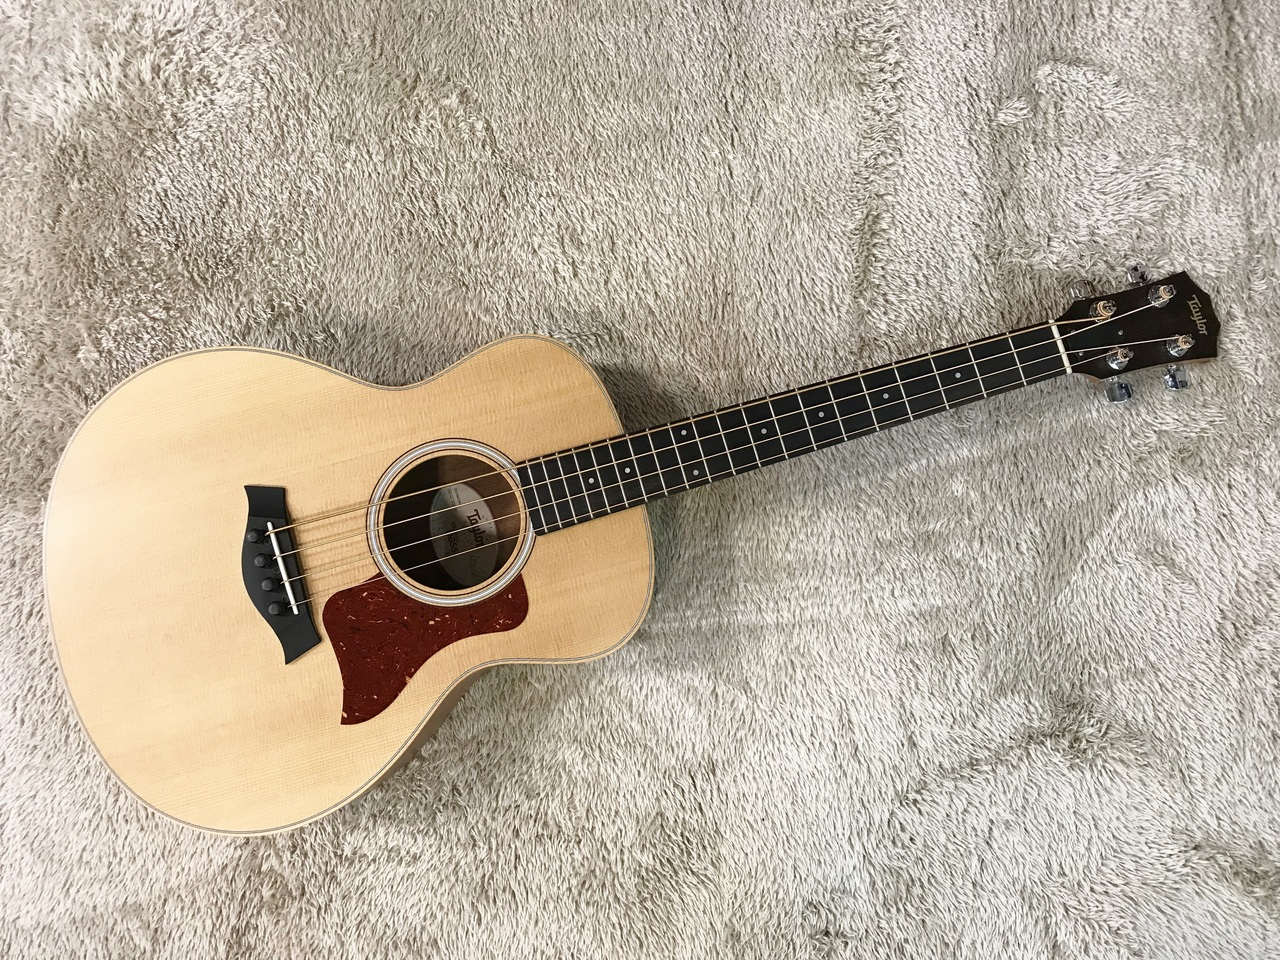 Taylor GS Mini-e Bass [used beauty goods] [Made in 2017] [electric acoustic guitar base]